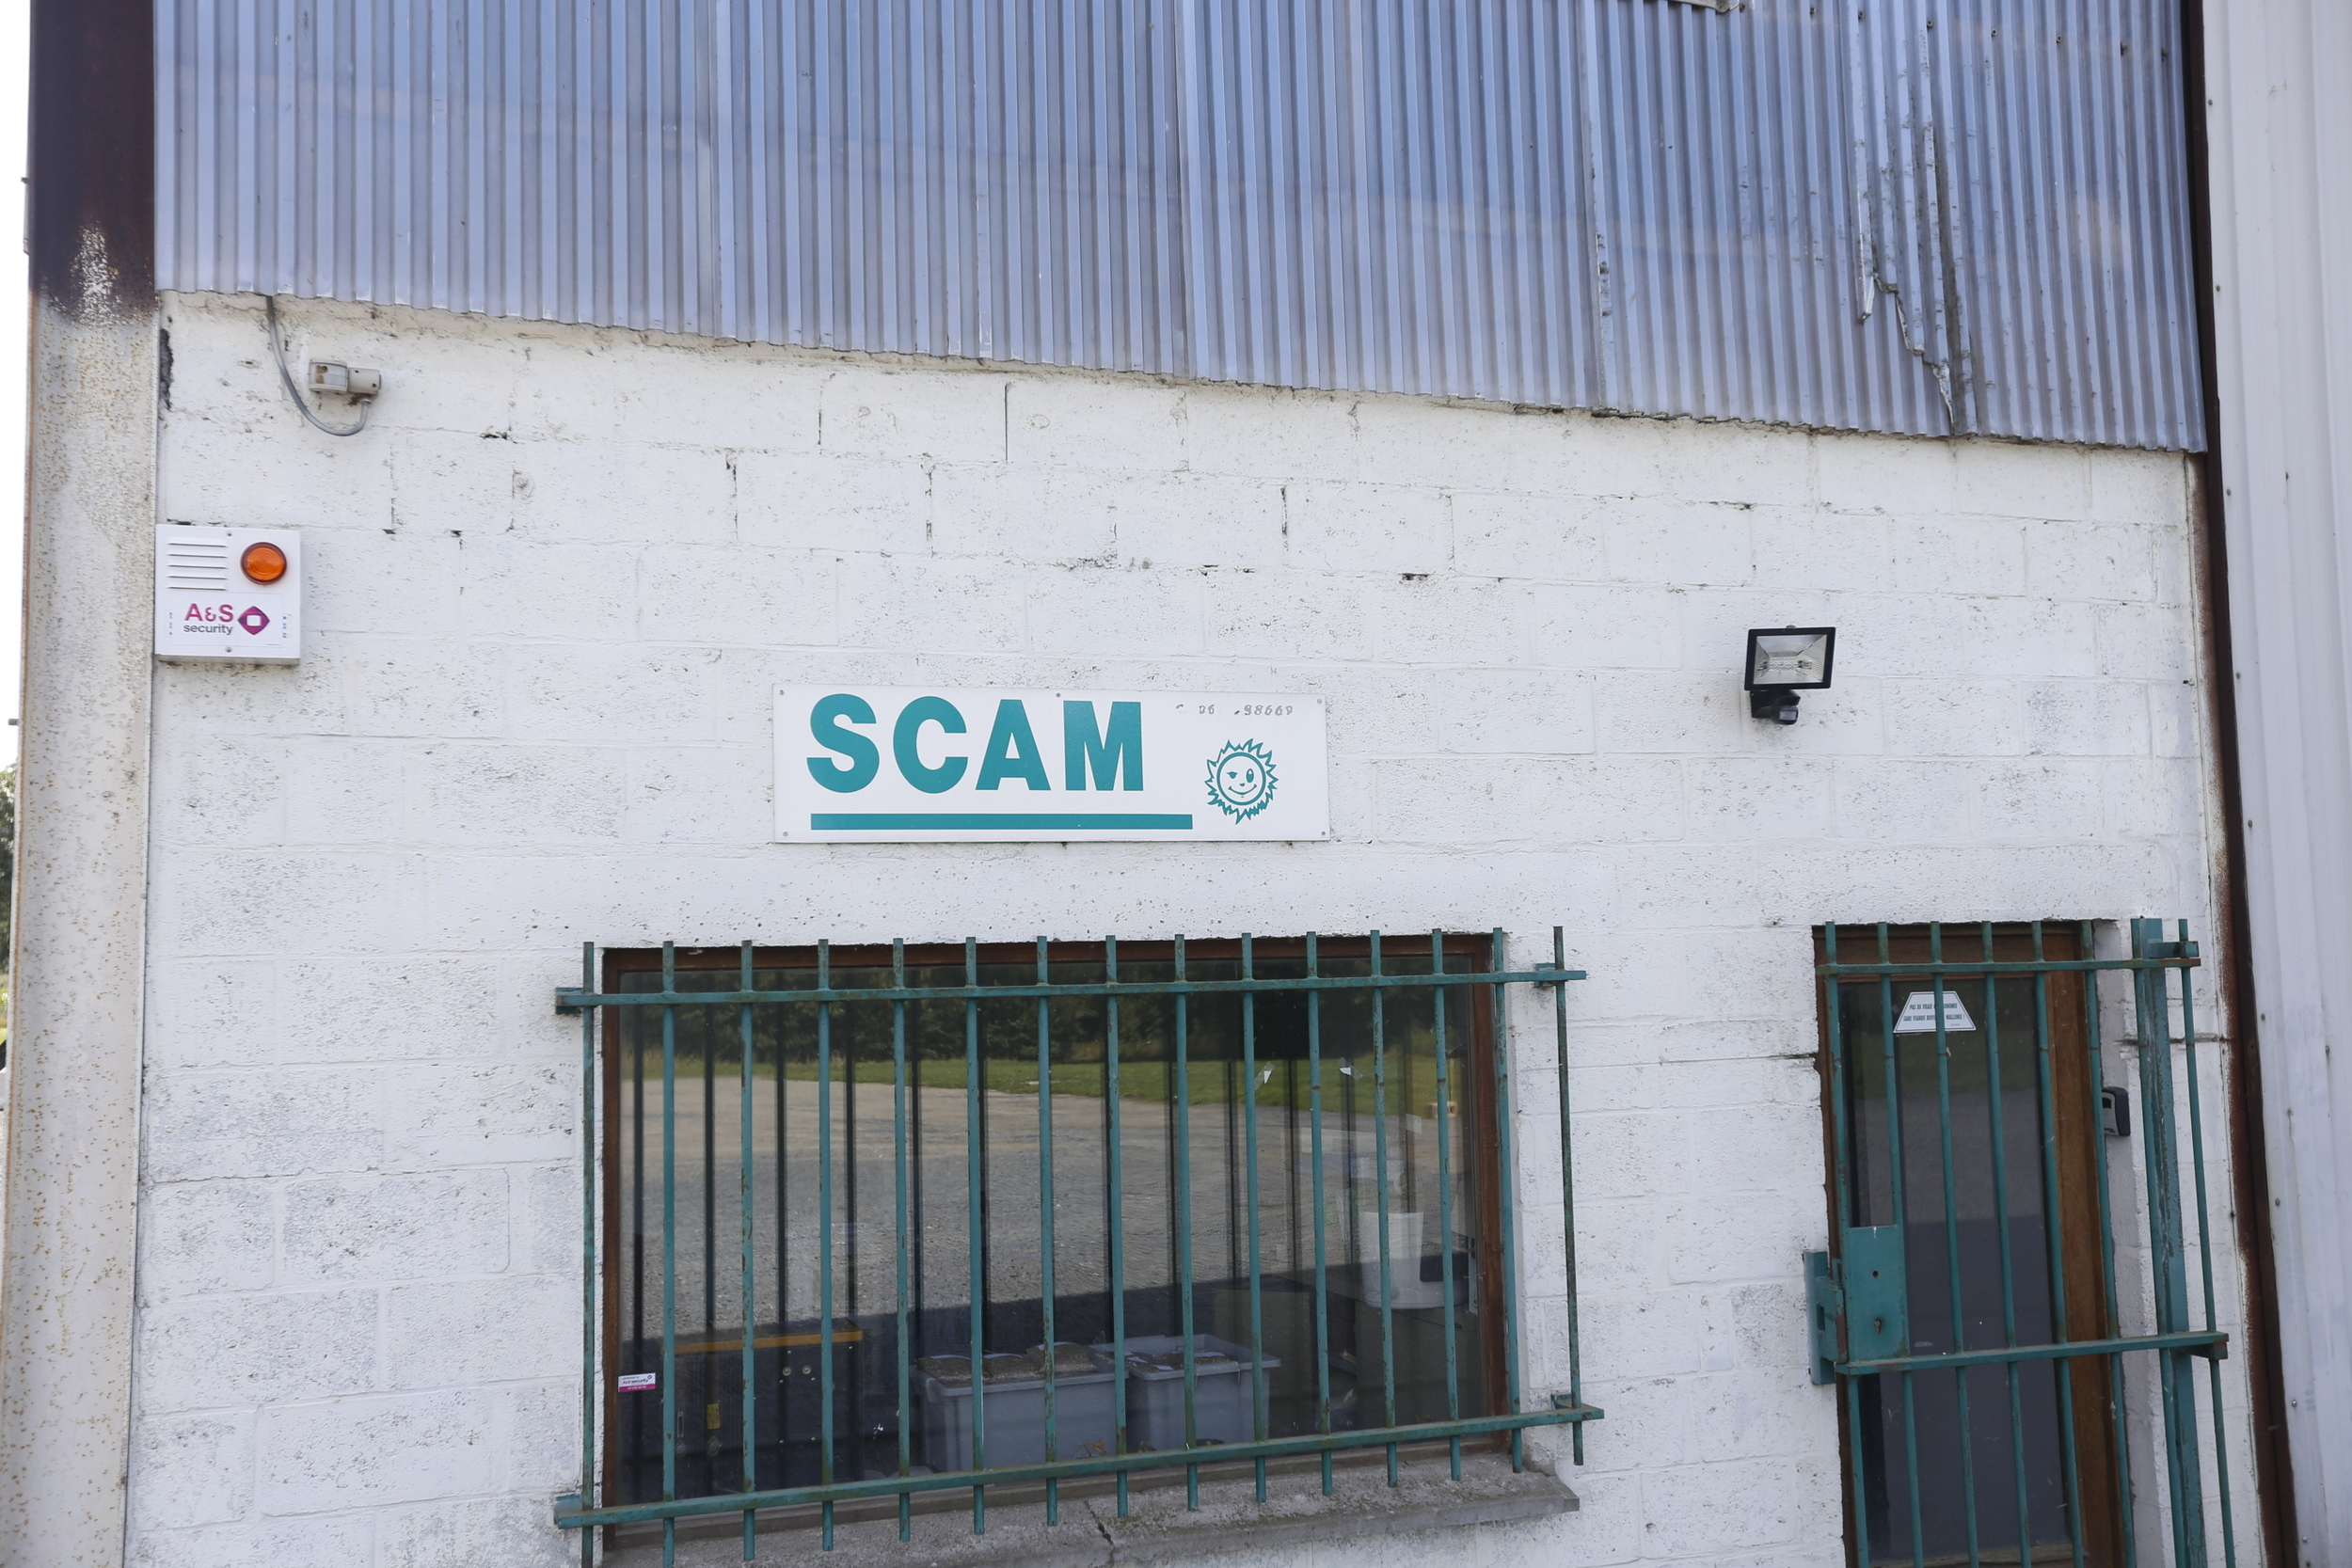 """"""" SCAM """", not the best name for a business...I particularly liked the winky face next to the name!"""